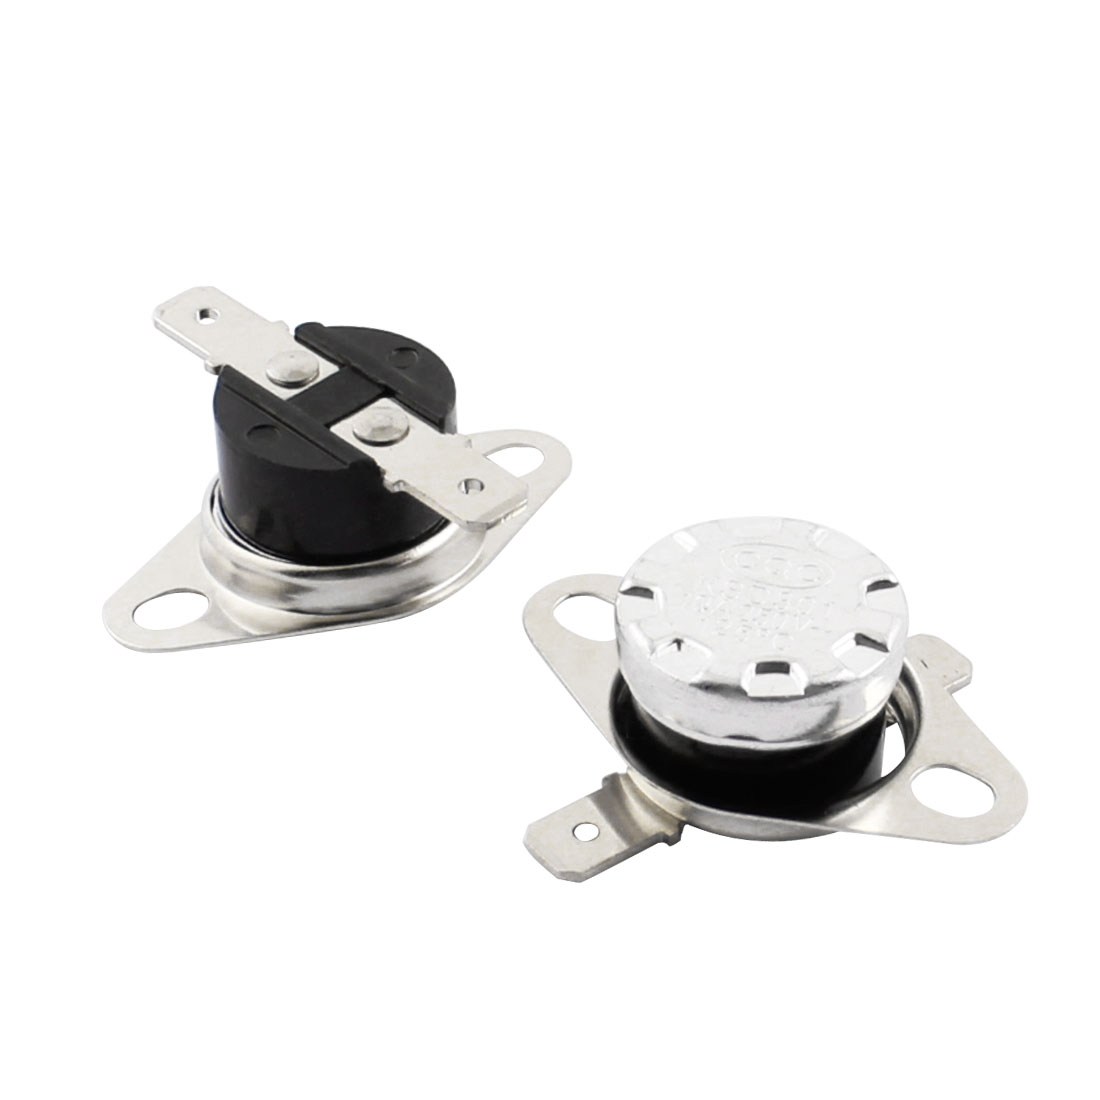 2Pcs KSD301 125C NC Temperature Control Switch Thermostat Protector AC 250V 10A